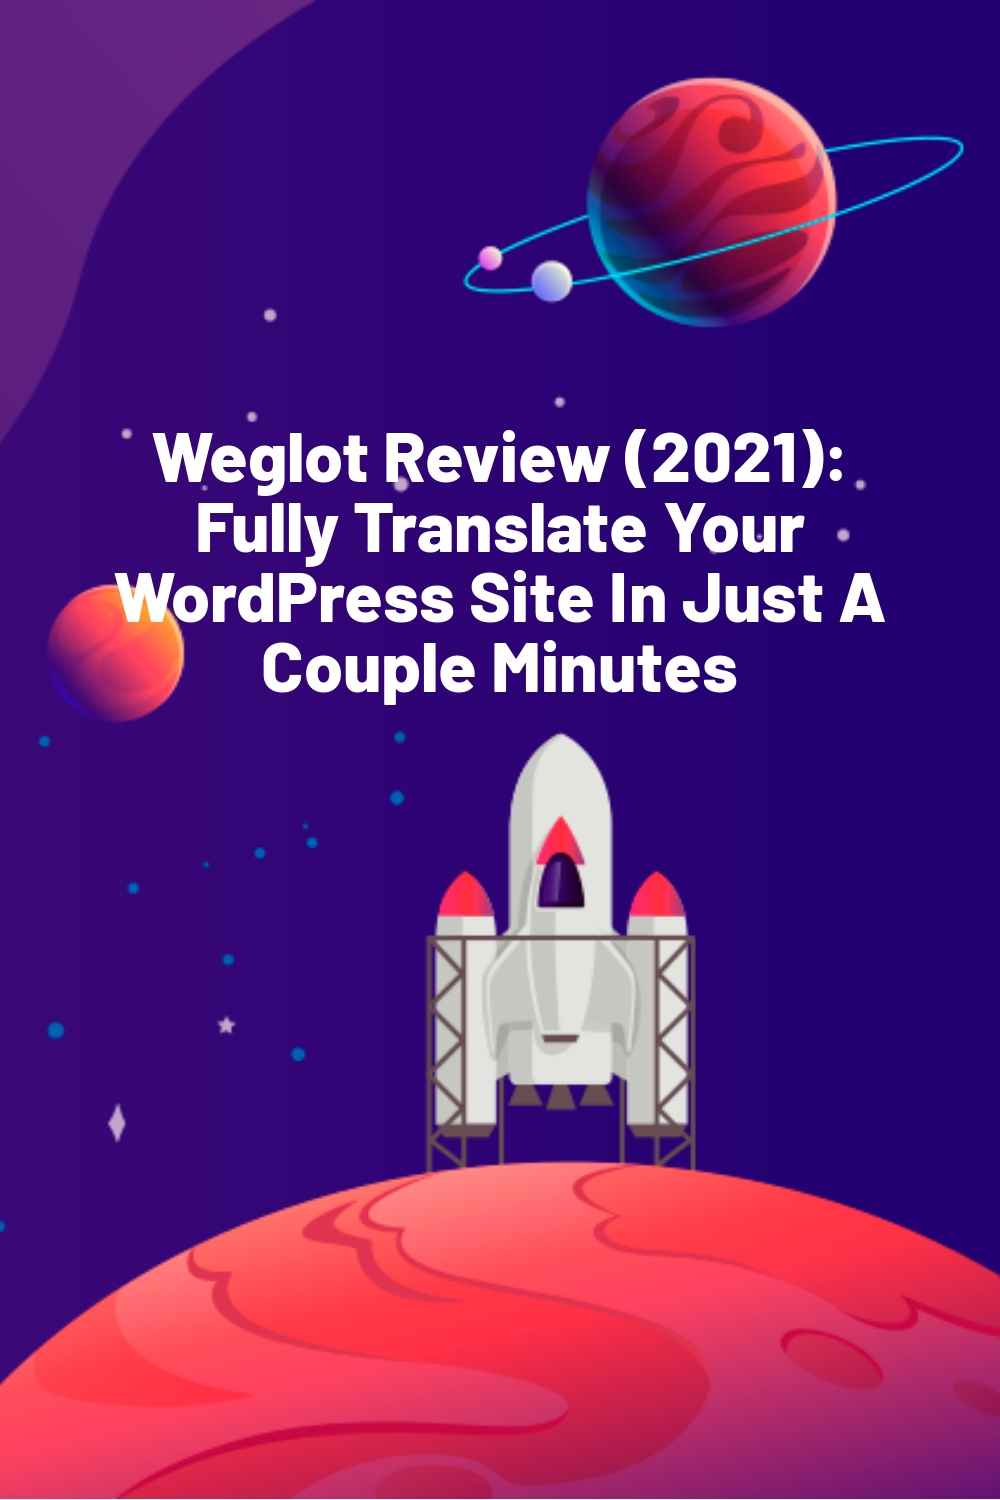 Weglot Review (2021): Fully Translate Your WordPress Site In Just A Couple Minutes